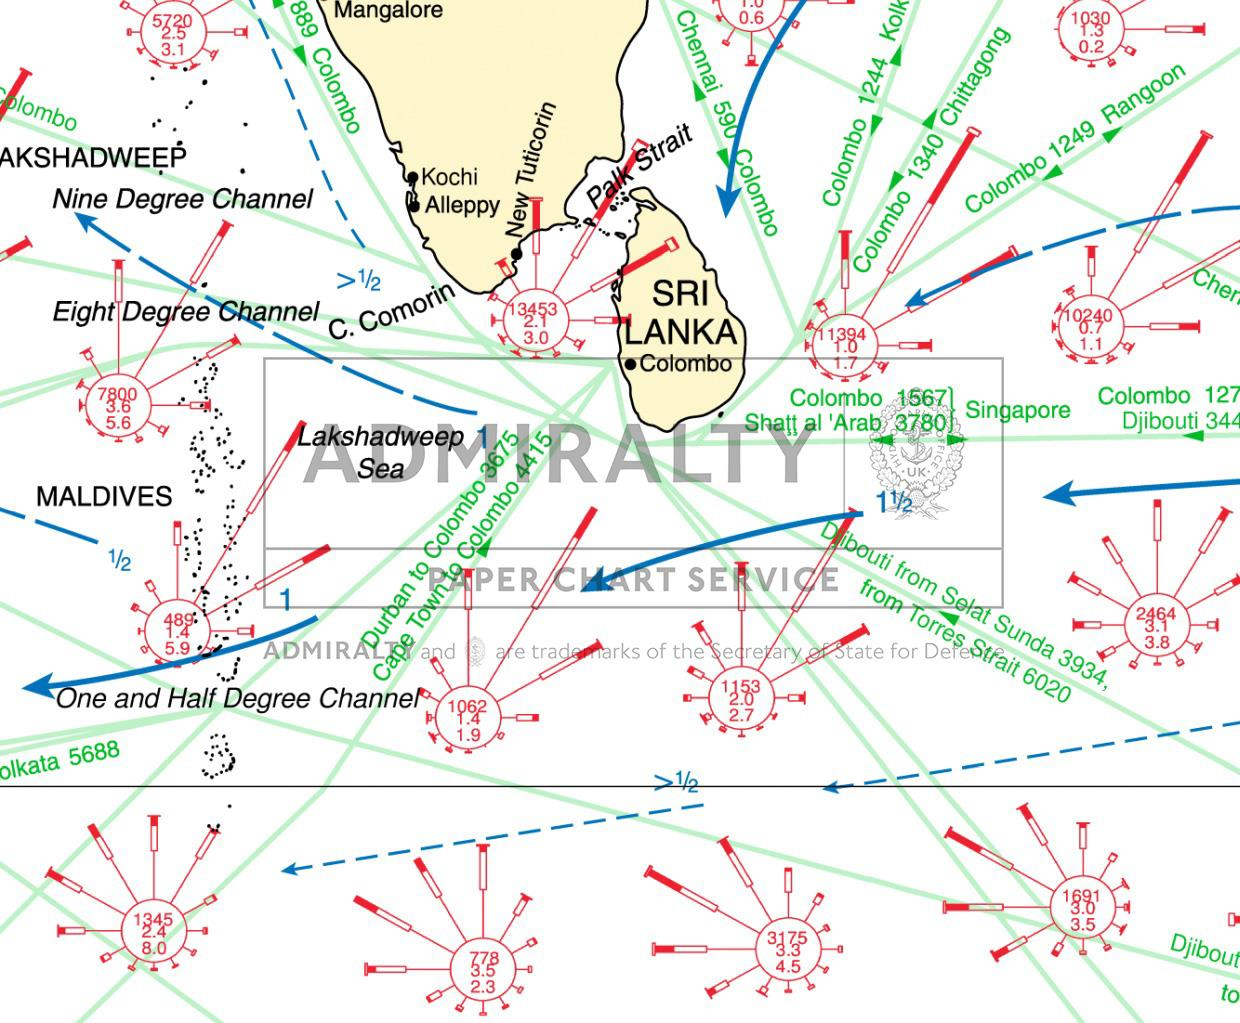 ADMIRALTY Routeing Charts Indian Ocean 5126